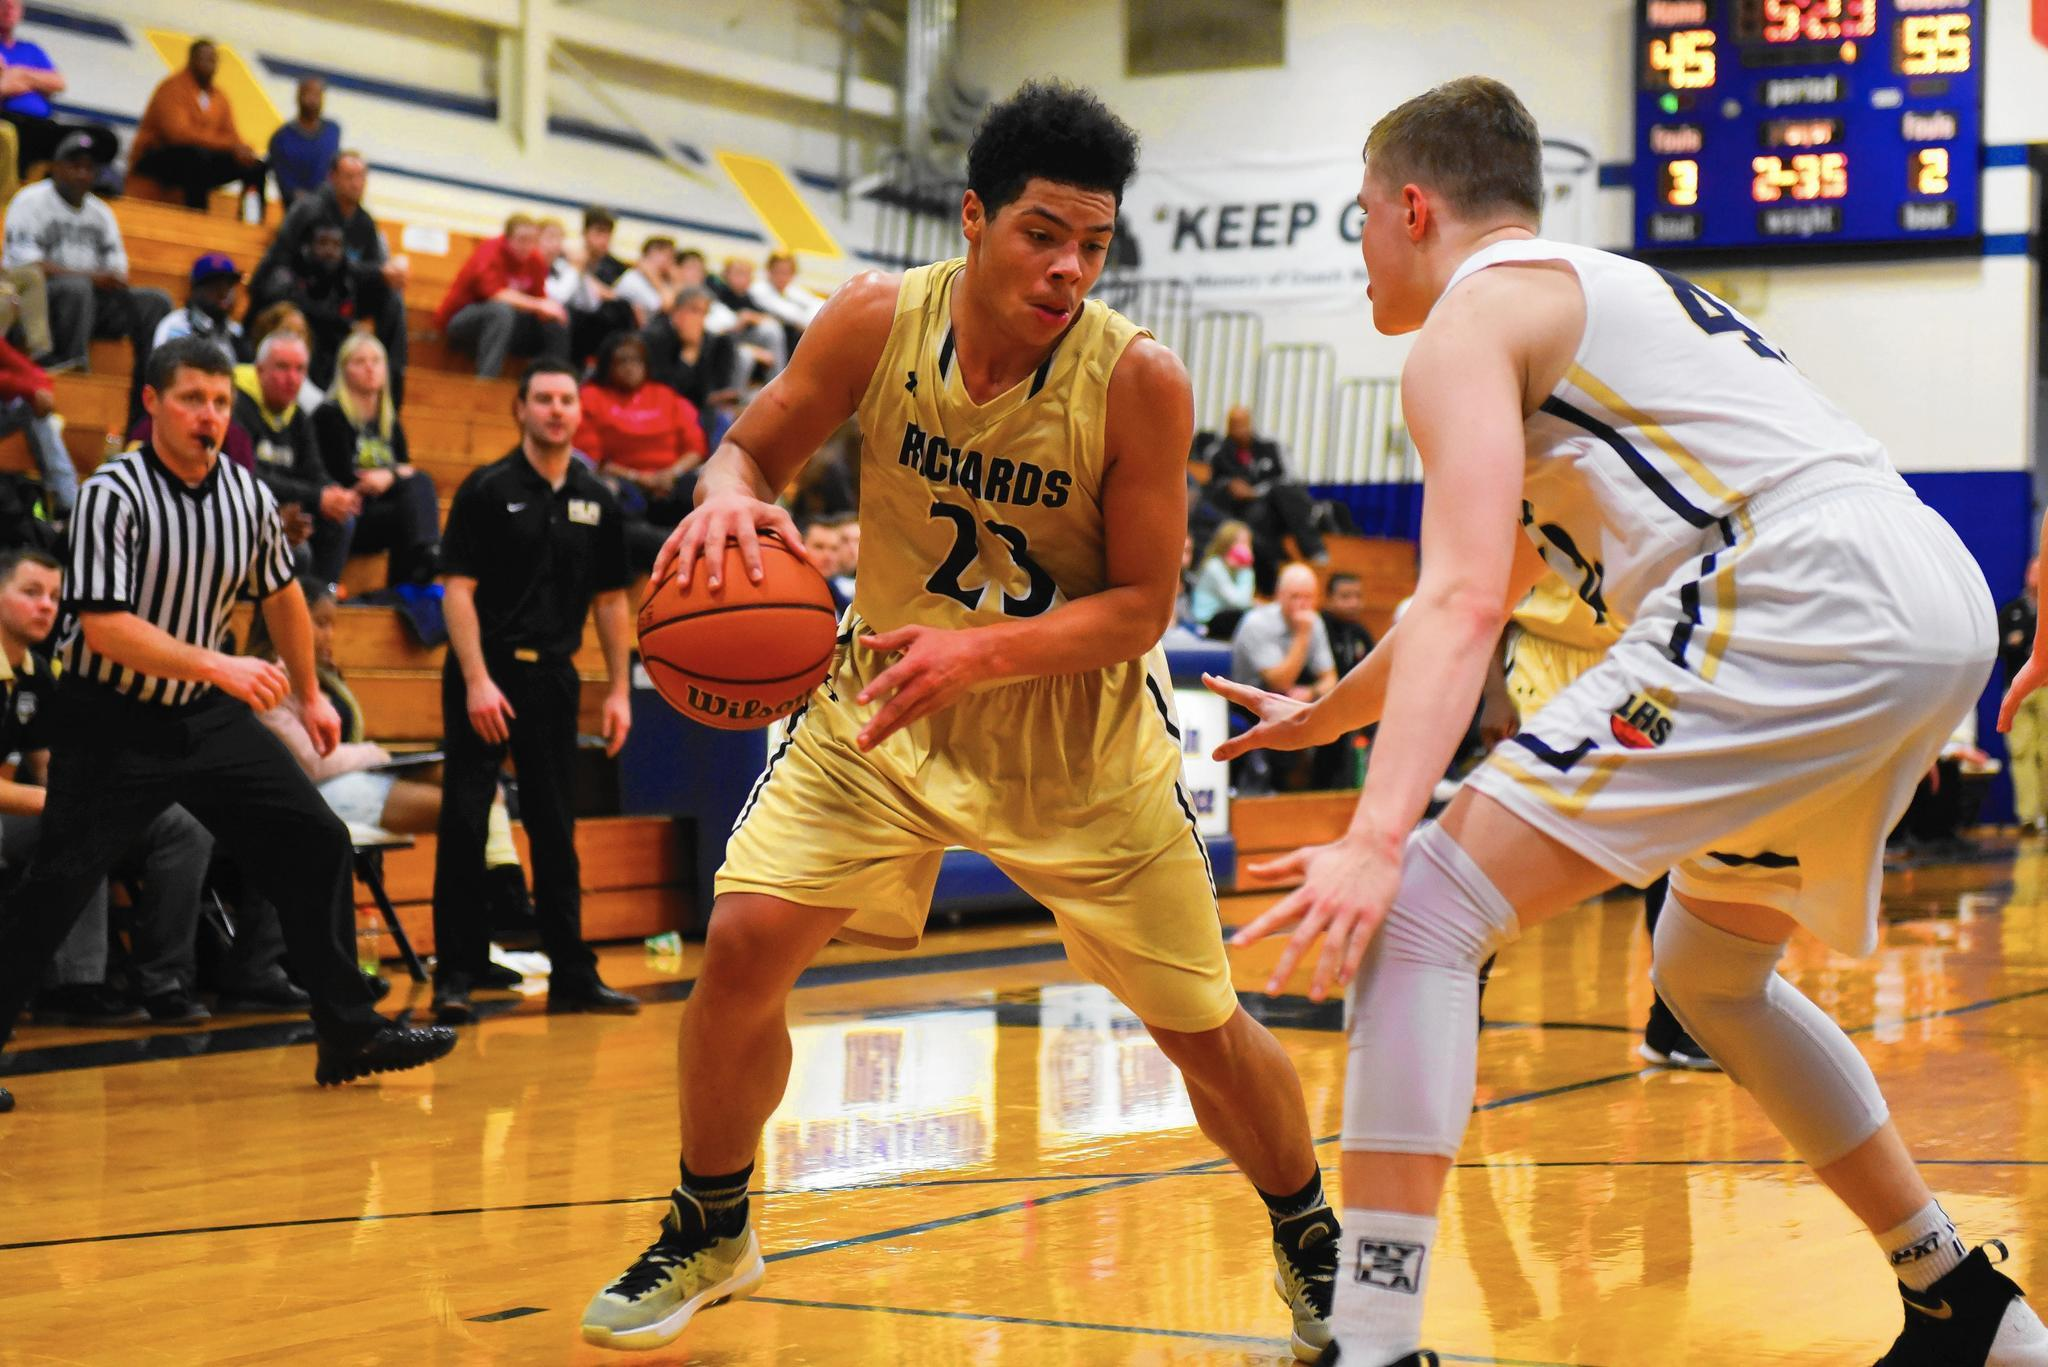 Ct-sta-boys-basketball-notes-st-0223-20180222